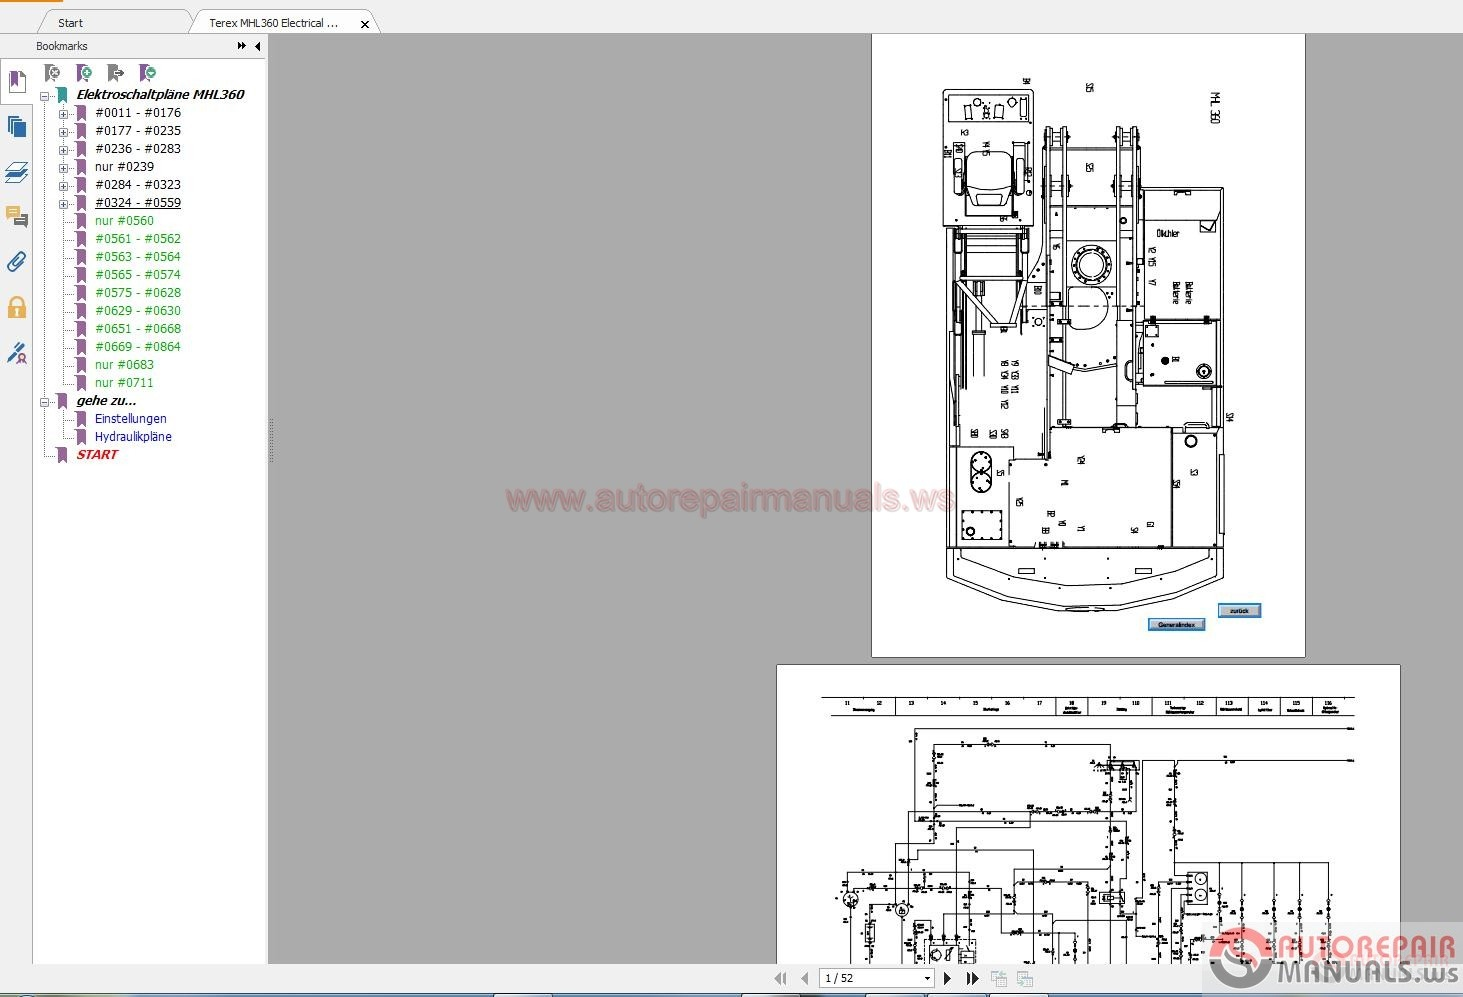 Kone Crane Wiring Diagram Konecranes Parts Manual Today Guide Trends Sample Terex Pt 30 Service Pdf Download Autos Post Hyster Hoist